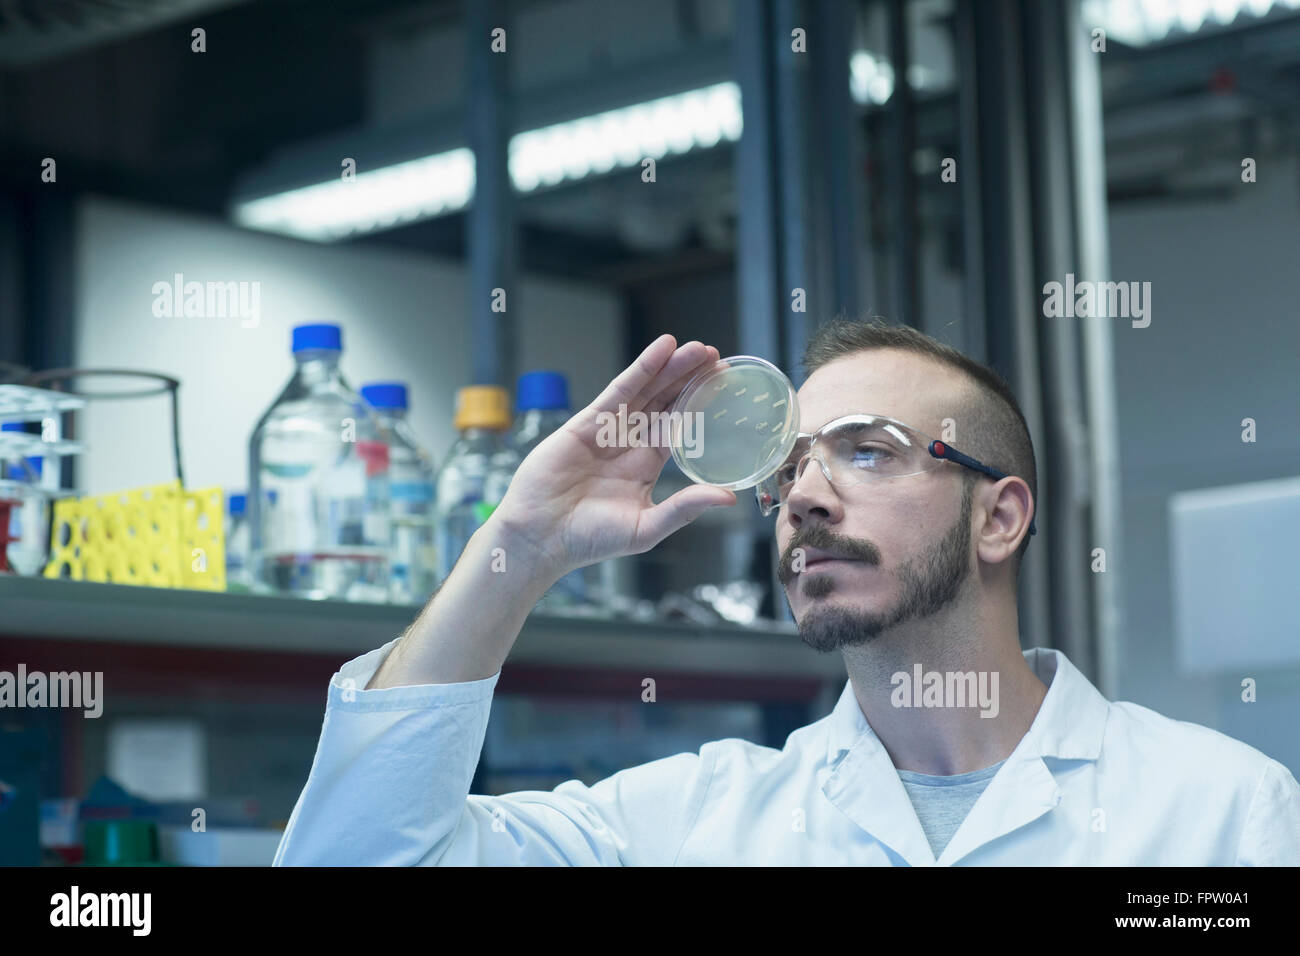 Young male scientist examining micro organisms in petri dish at a pharmacy laboratory, Baden-Württemberg, German - Stock Image